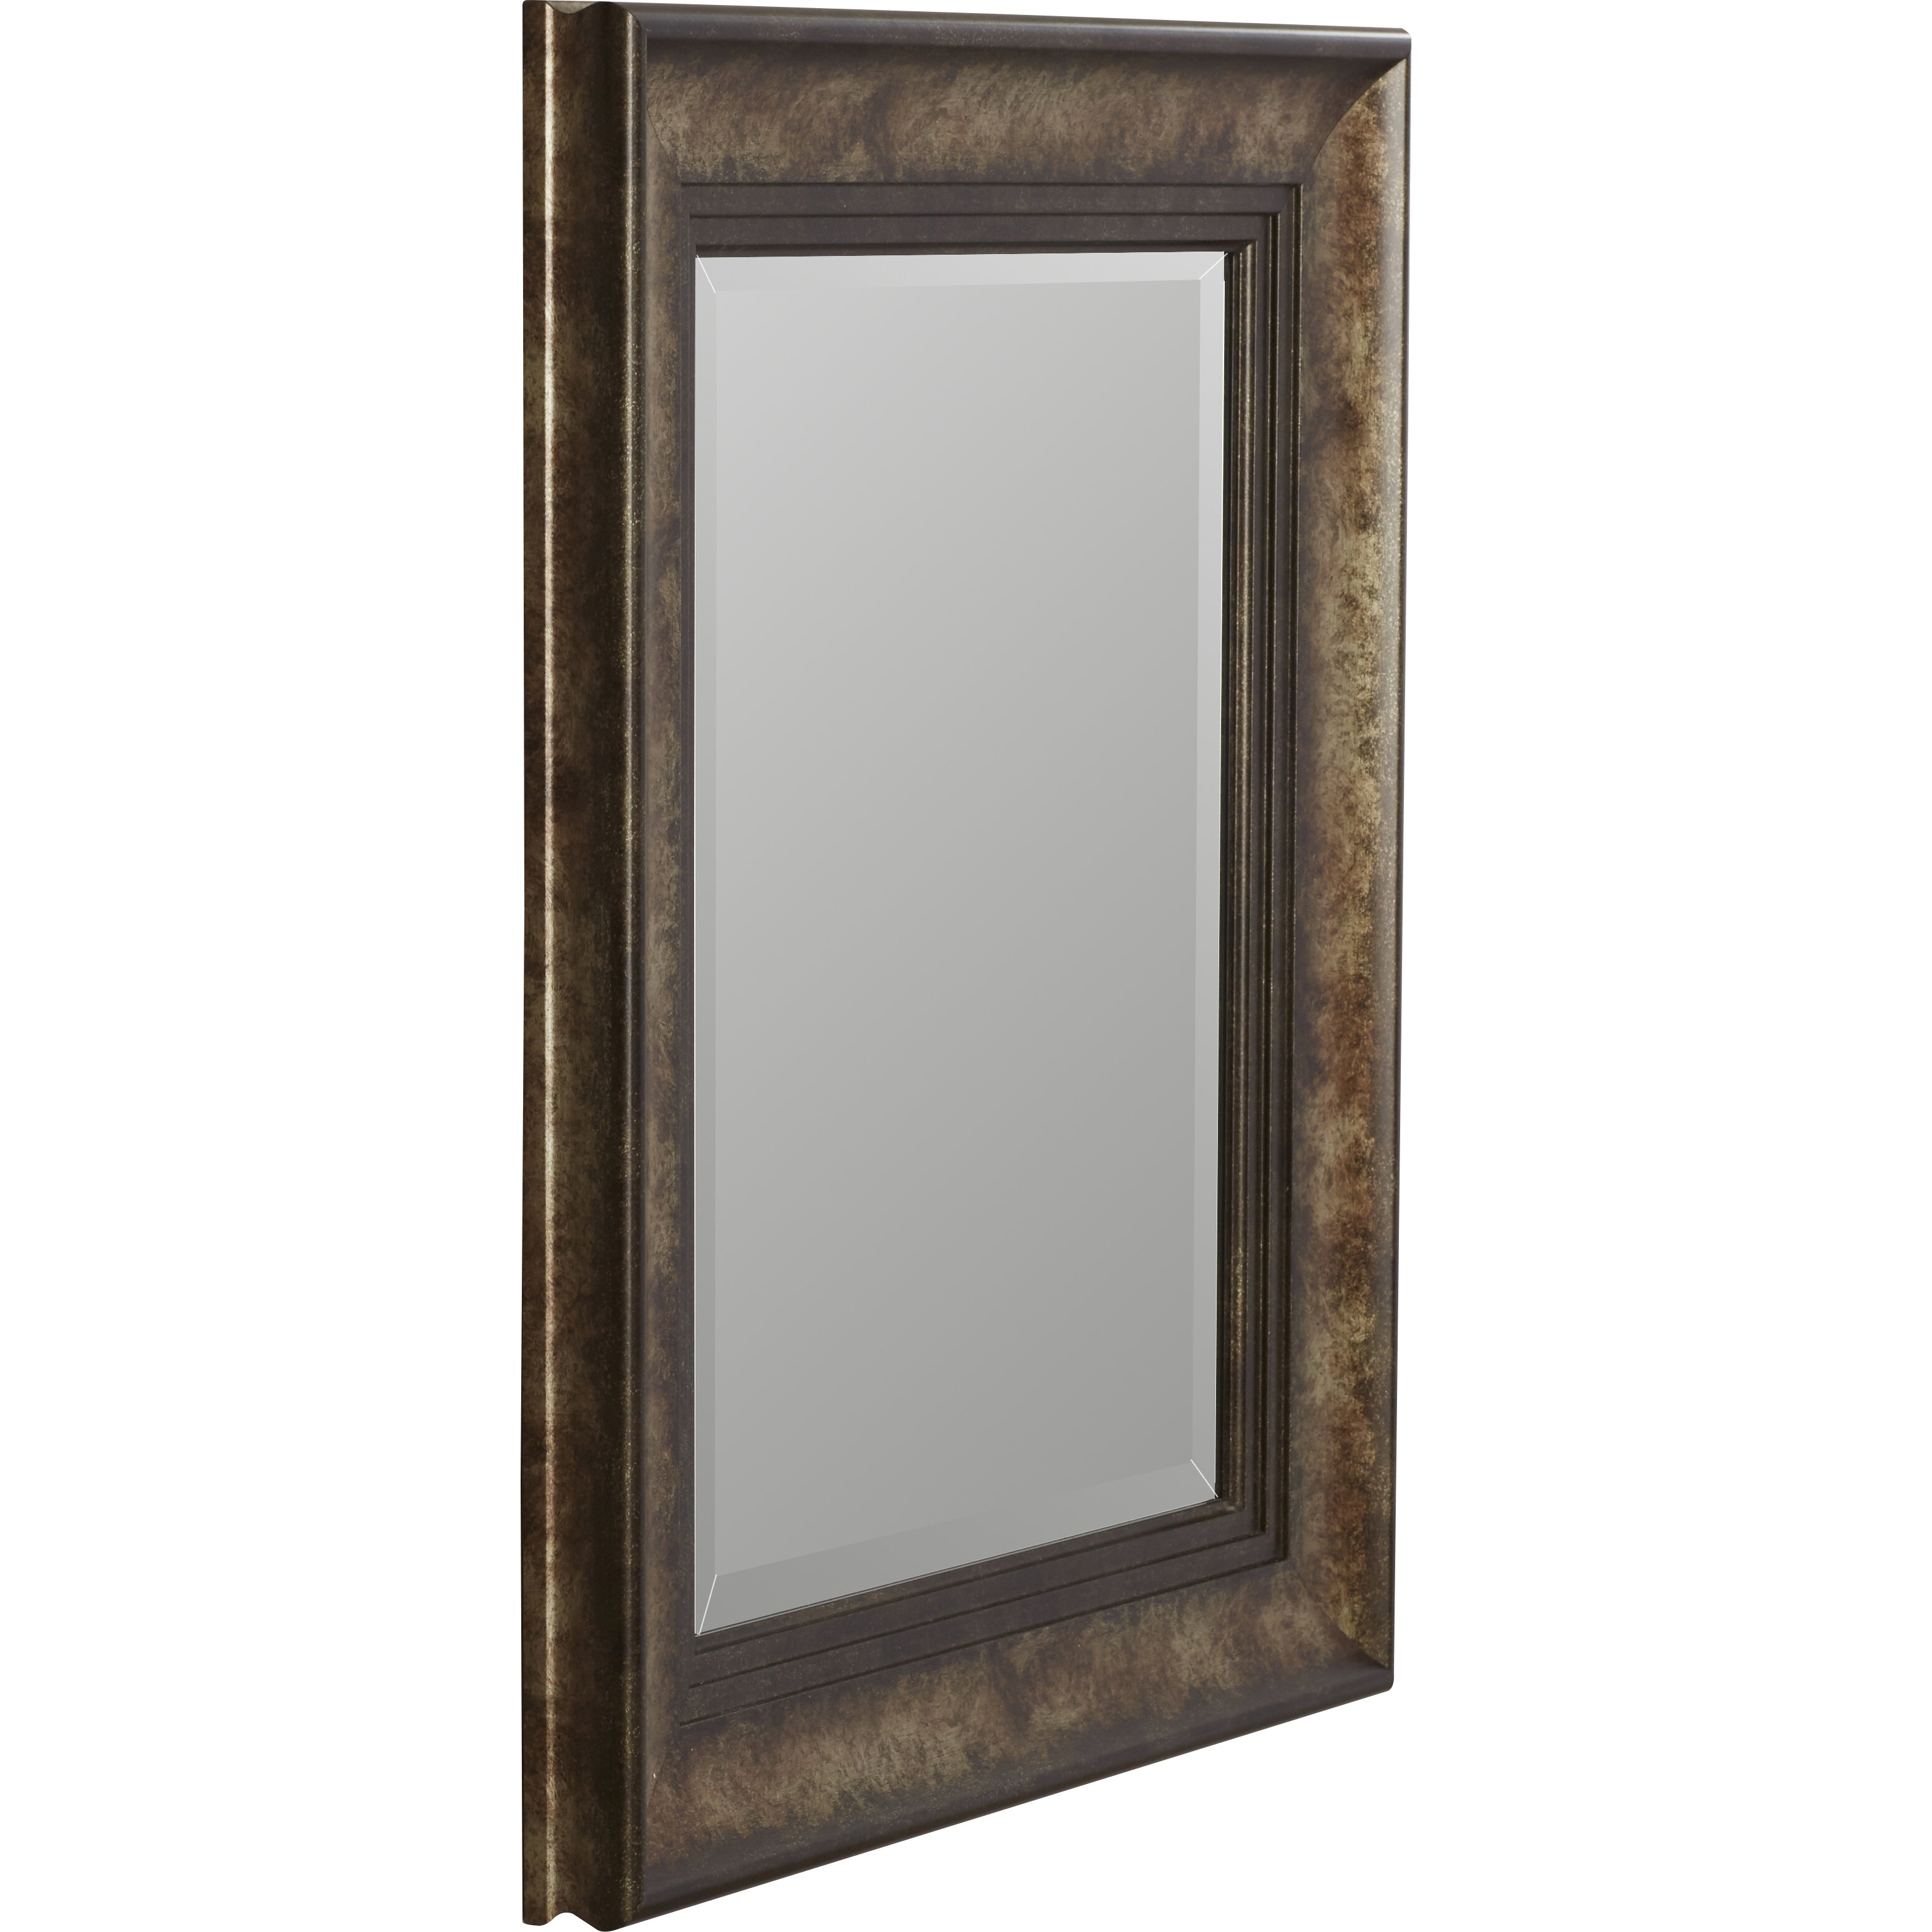 Darby home co framed beveled plate glass mirror reviews for Beveled glass mirror